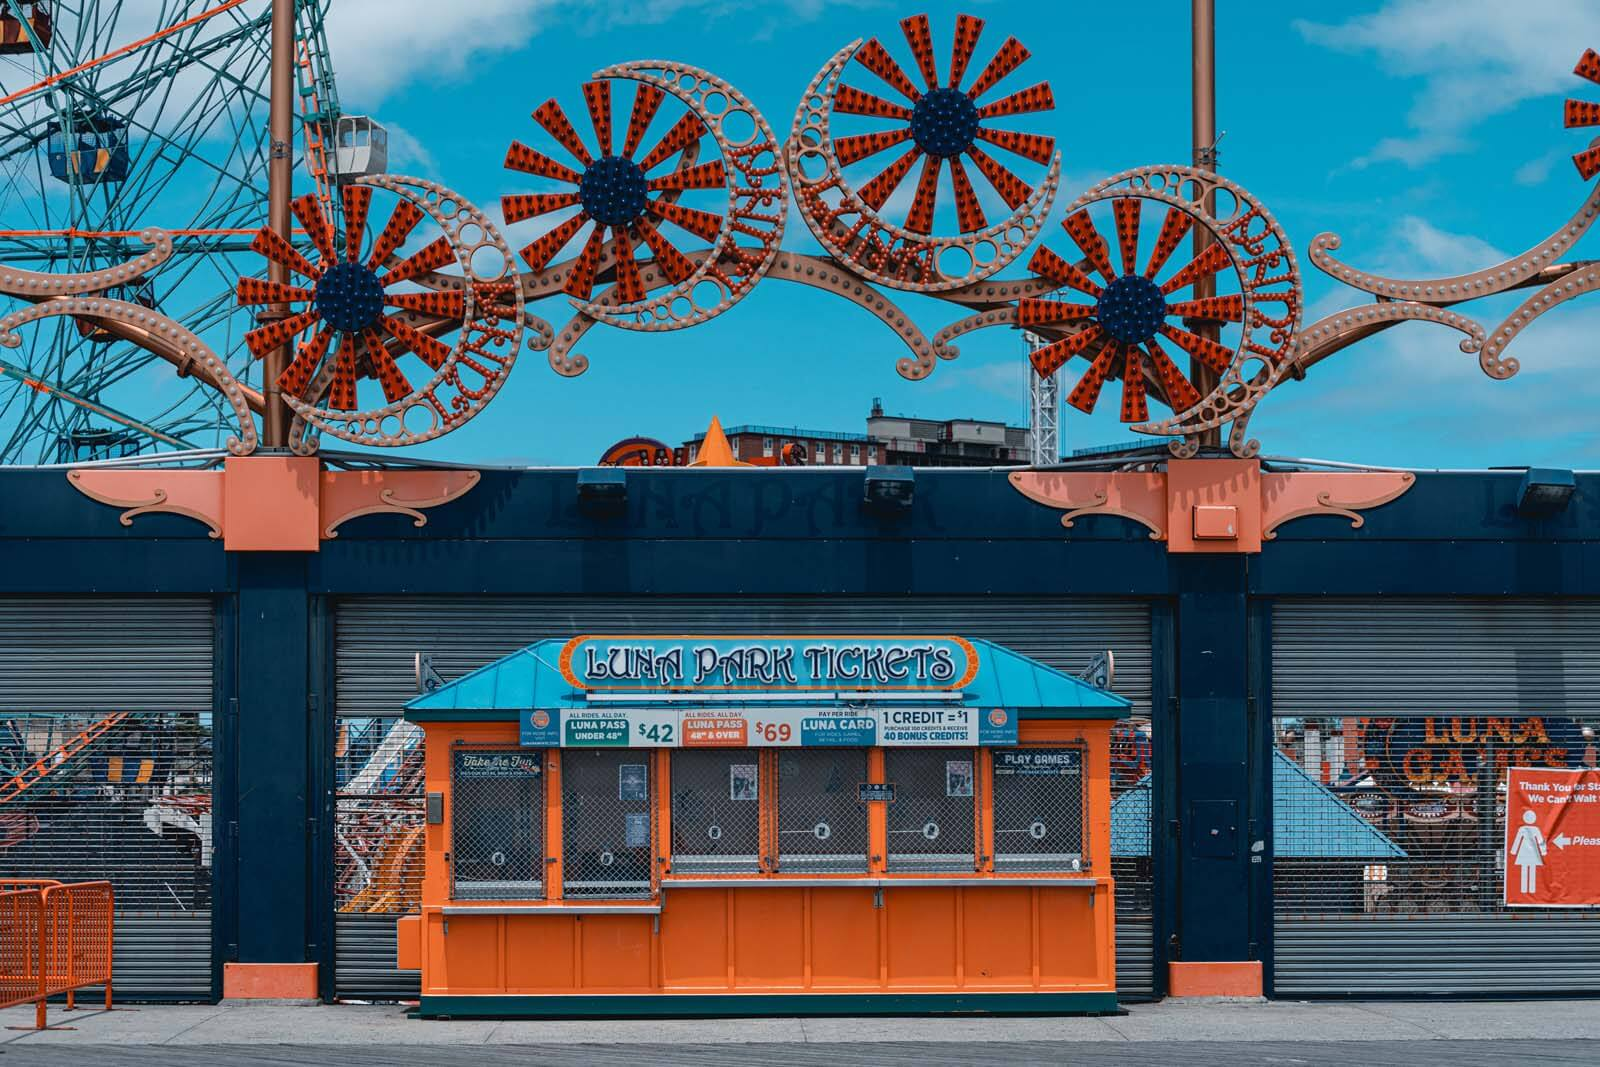 Entrance to Luna Park at Coney Island from Riegelmann Boardwalk